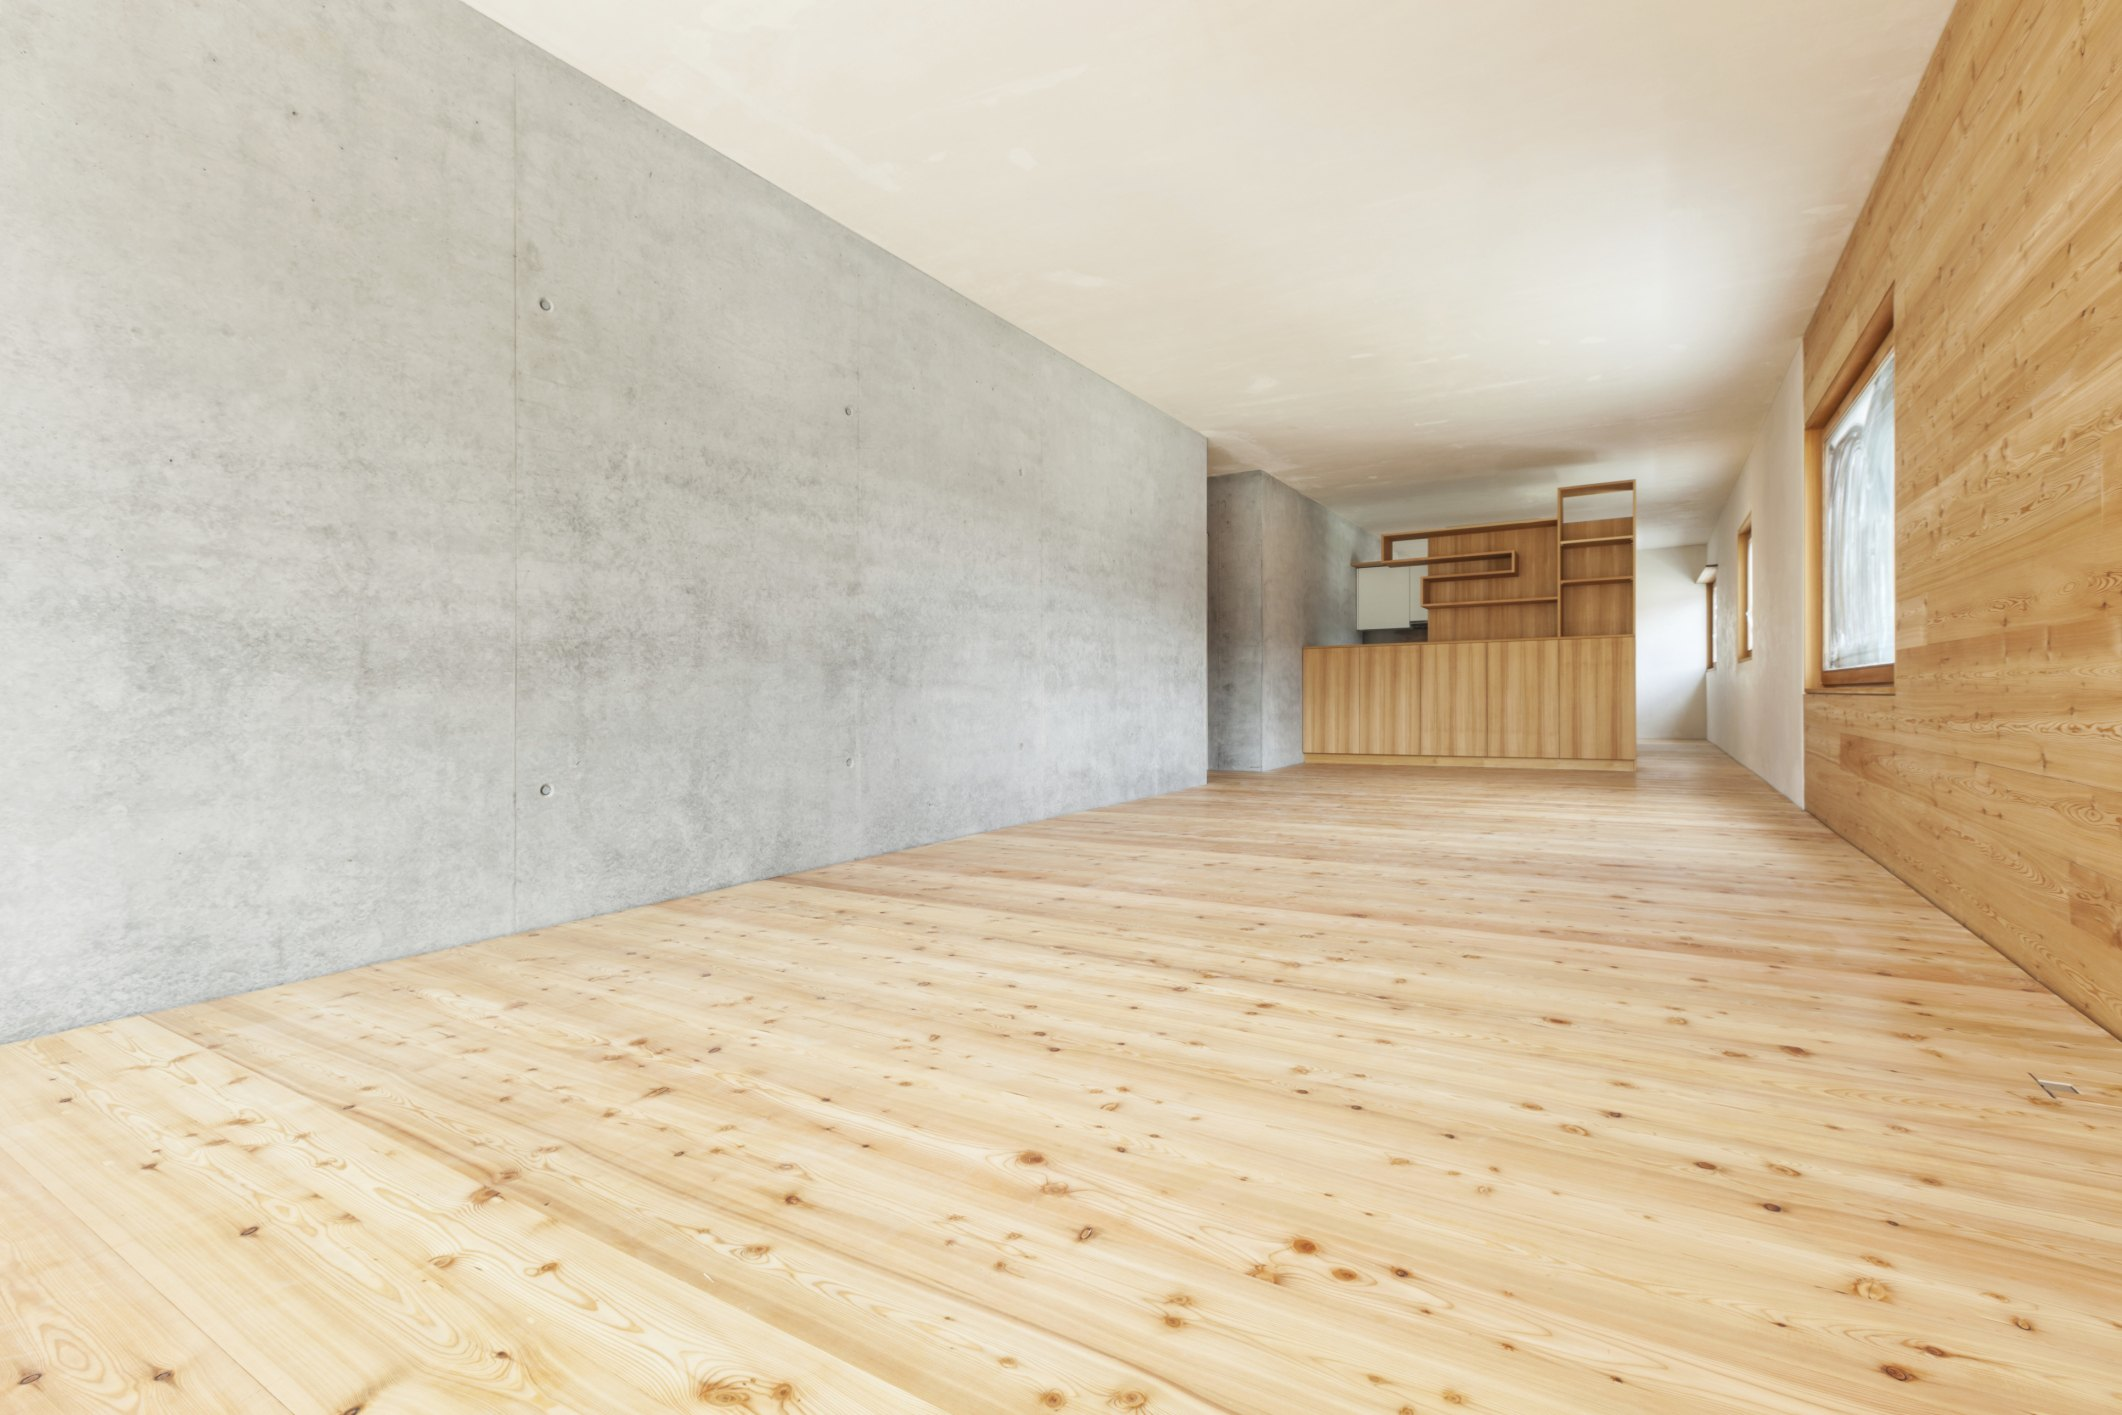 Cement Flooring Installers : How to install hardwood flooring on concrete ehow